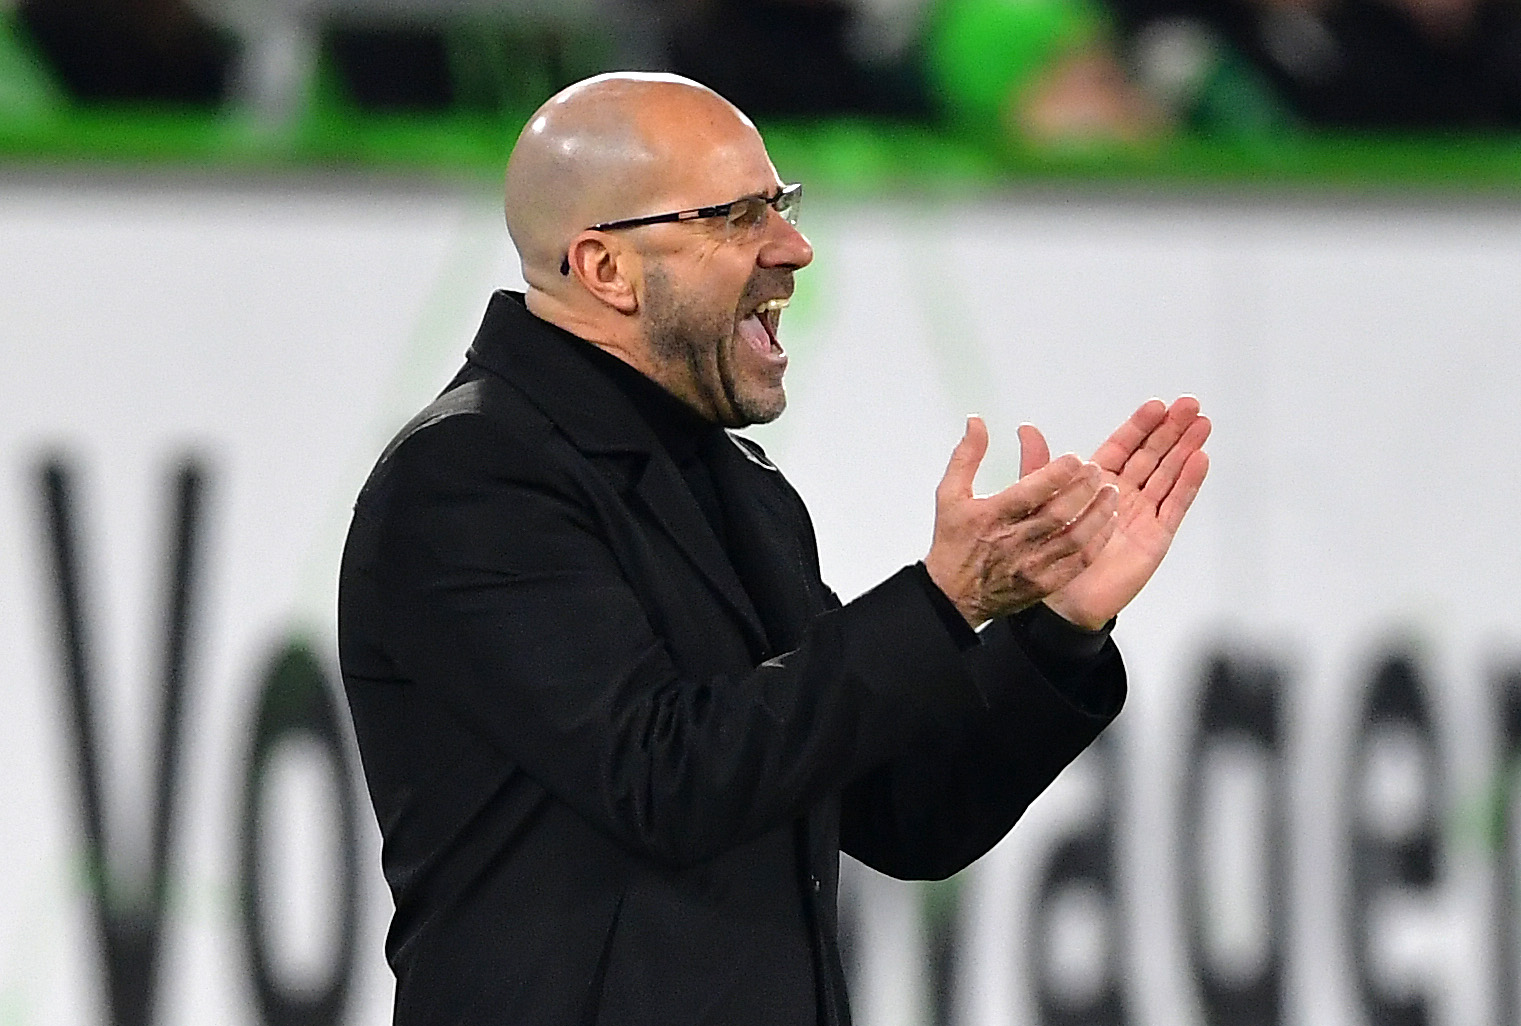 WOLFSBURG, GERMANY - JANUARY 26: Peter Bosz, Manager of Bayer 04 Leverkusen gives his team instructions during the Bundesliga match between VfL Wolfsburg and Bayer 04 Leverkusen at Volkswagen Arena on January 26, 2019 in Wolfsburg, Germany. (Photo by Stuart Franklin/Bongarts/Getty Images)